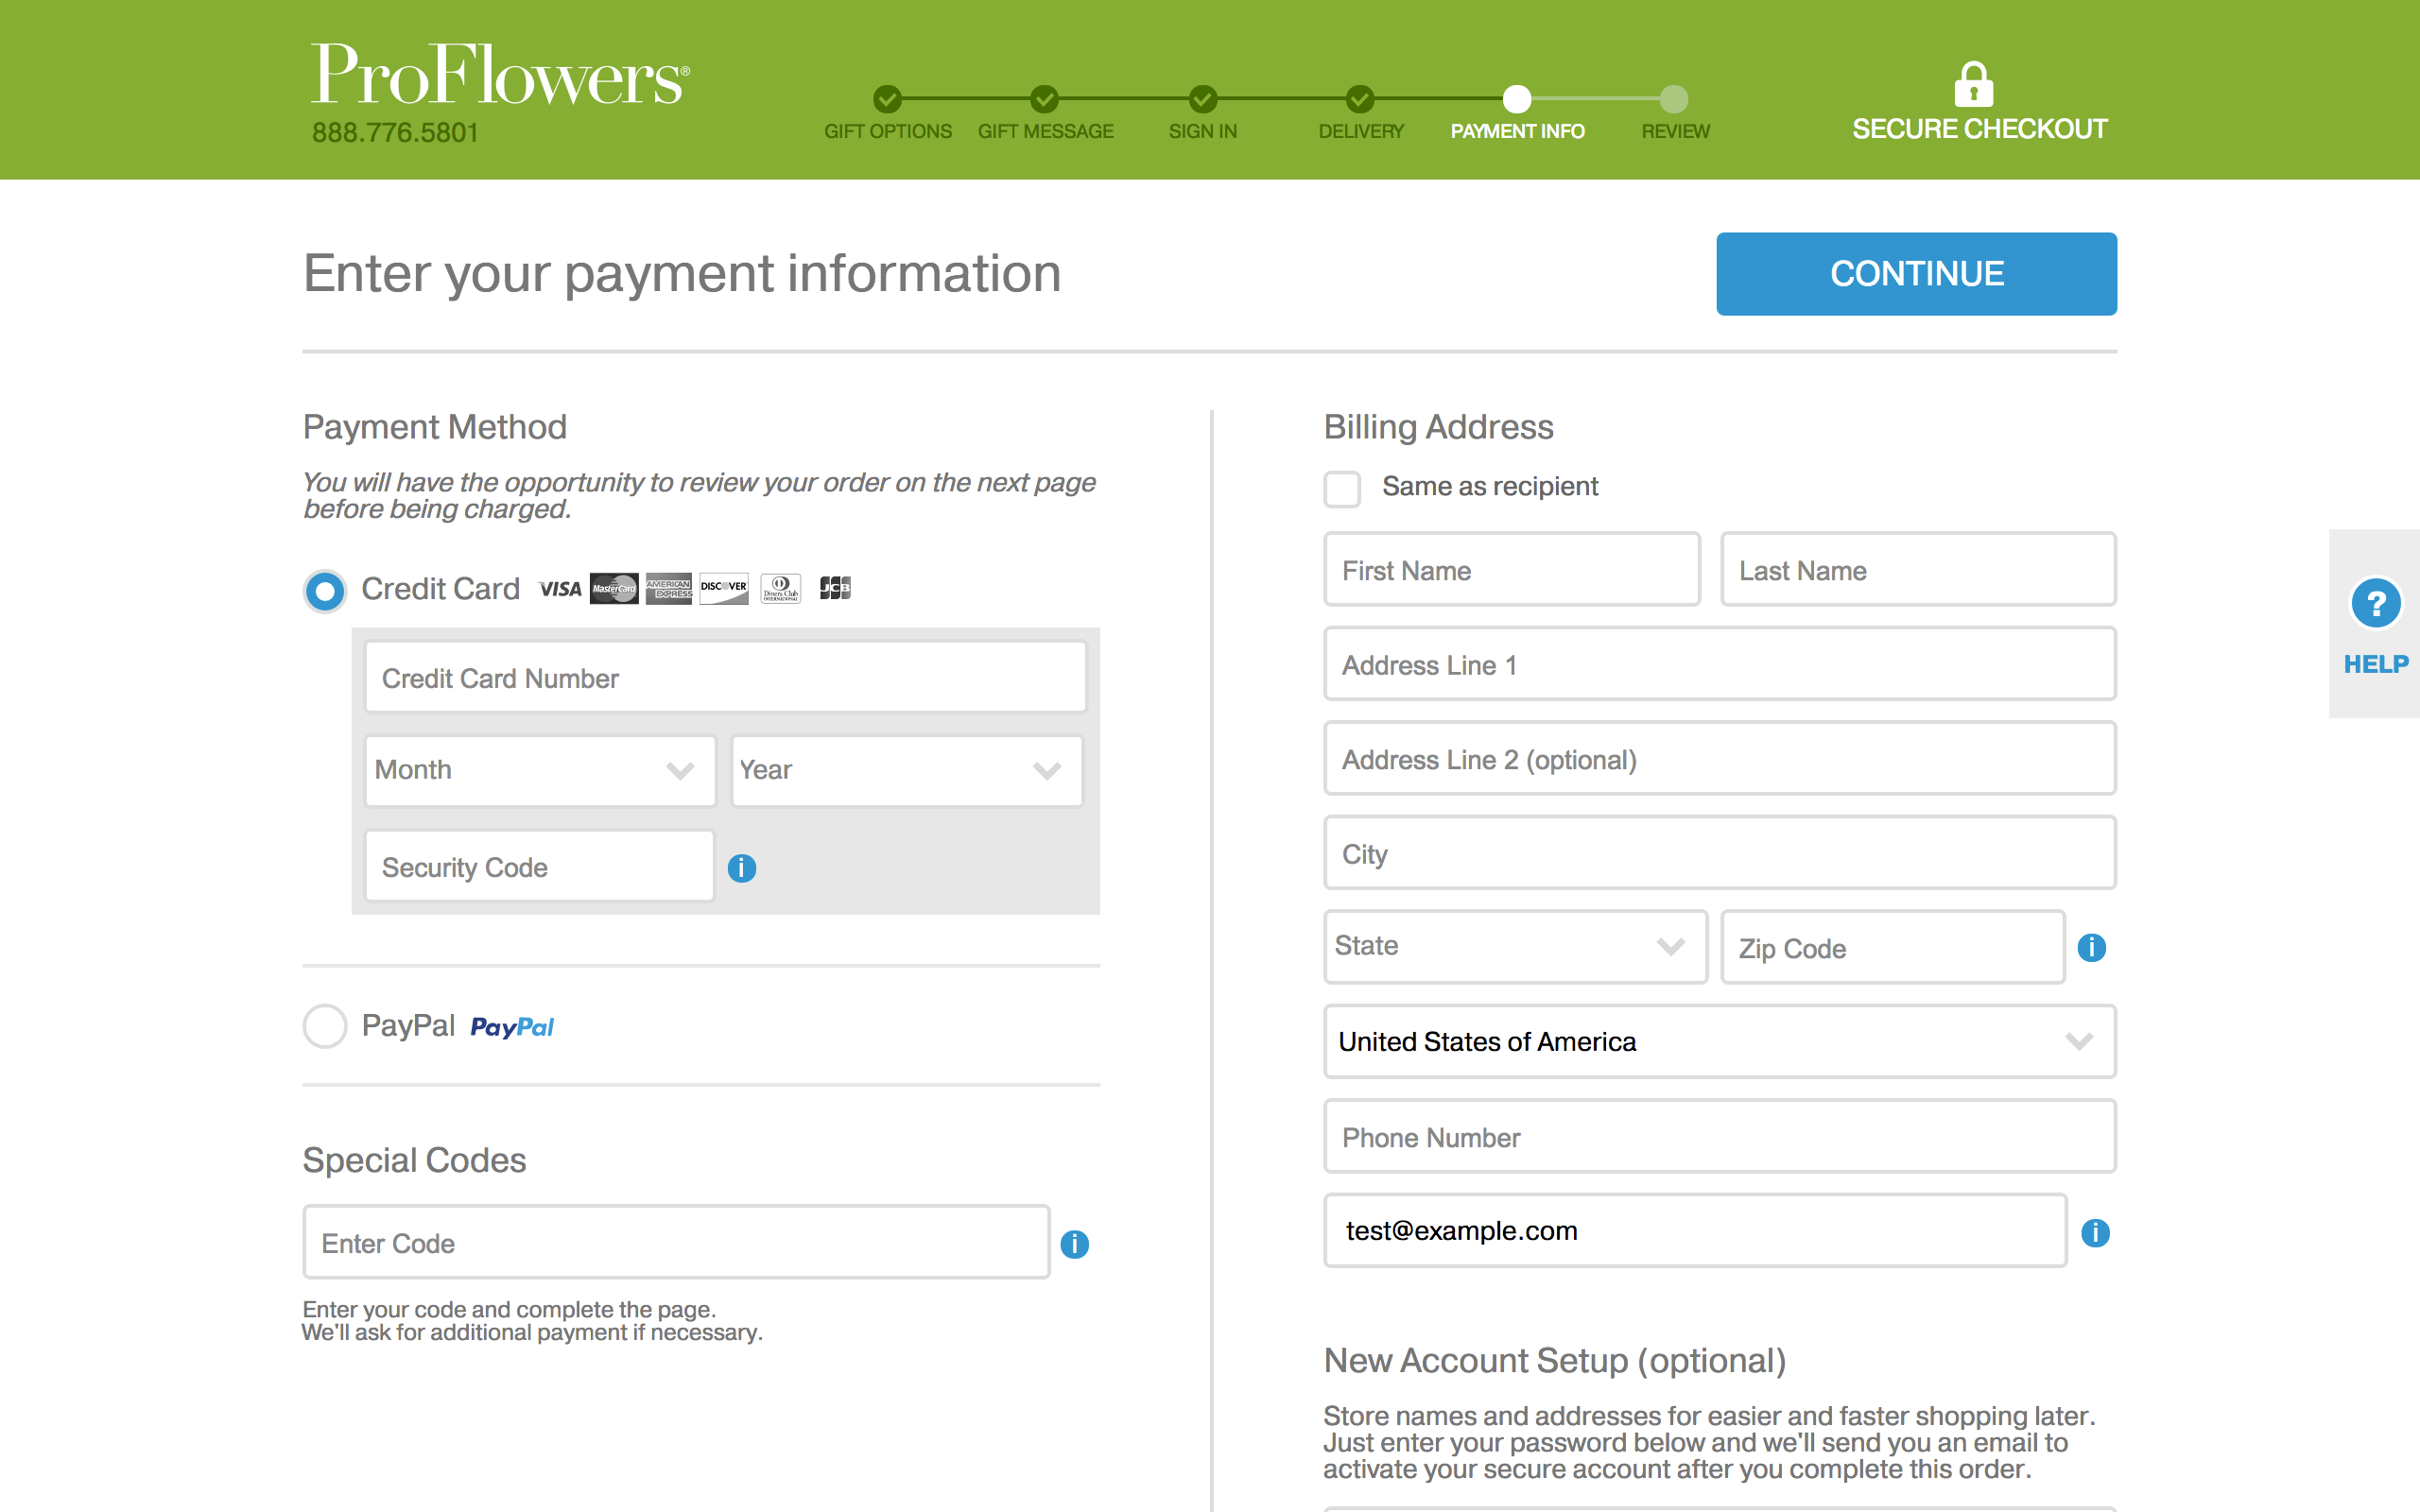 Proflowers - payment information page - screenshot